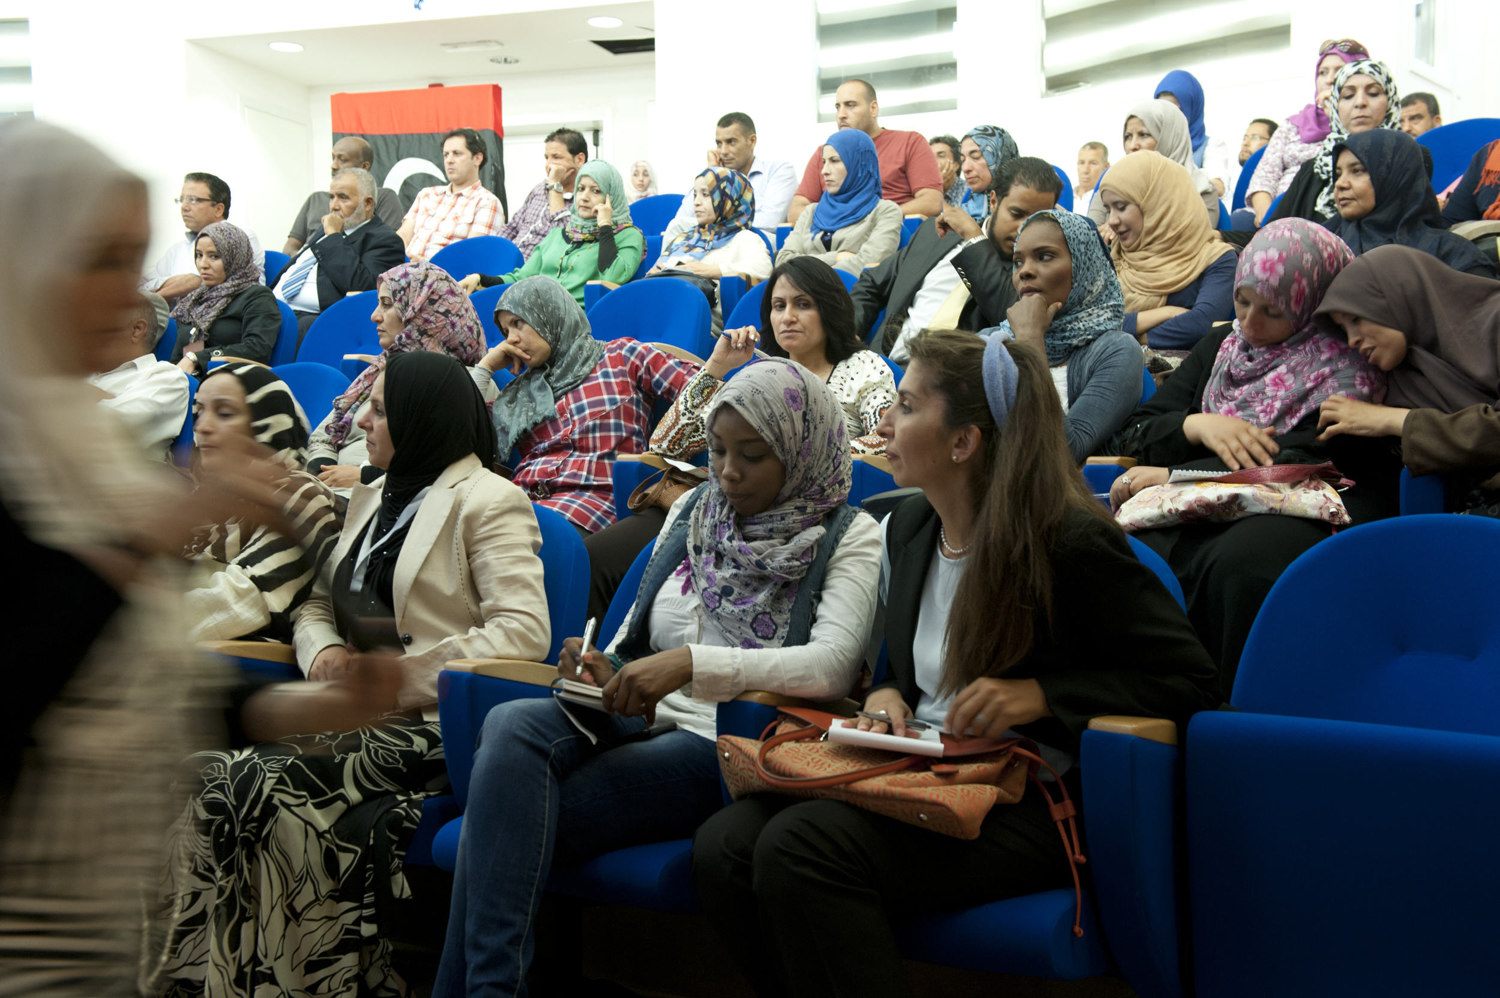 Women take notes during the Libyan International Women's Organization meeting in Tripoli on July 11th, 2012.